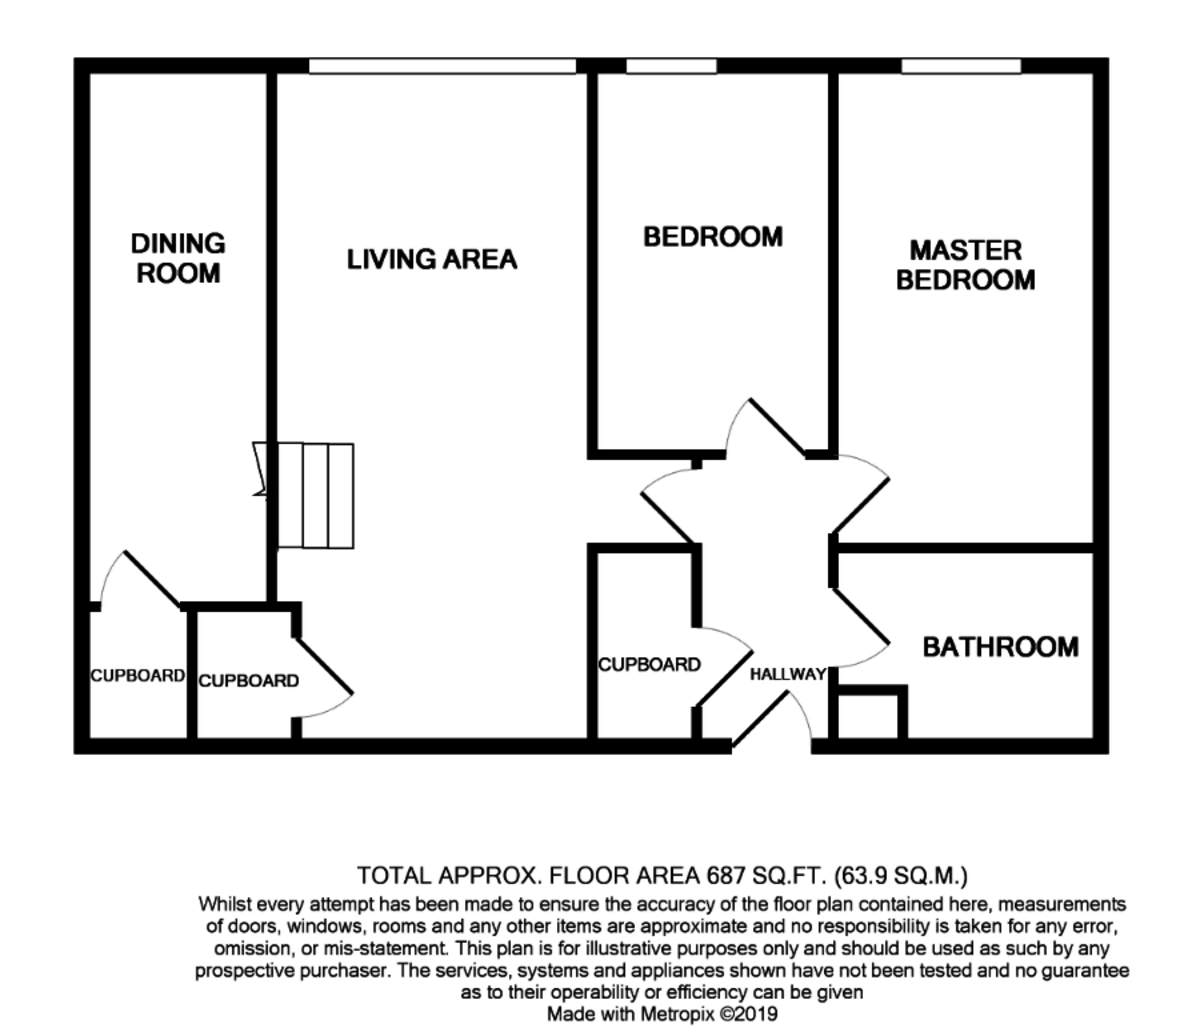 Sapphire Heights, 30 Tenby Street North, Jewellery Quarter floorplan 1 of 1